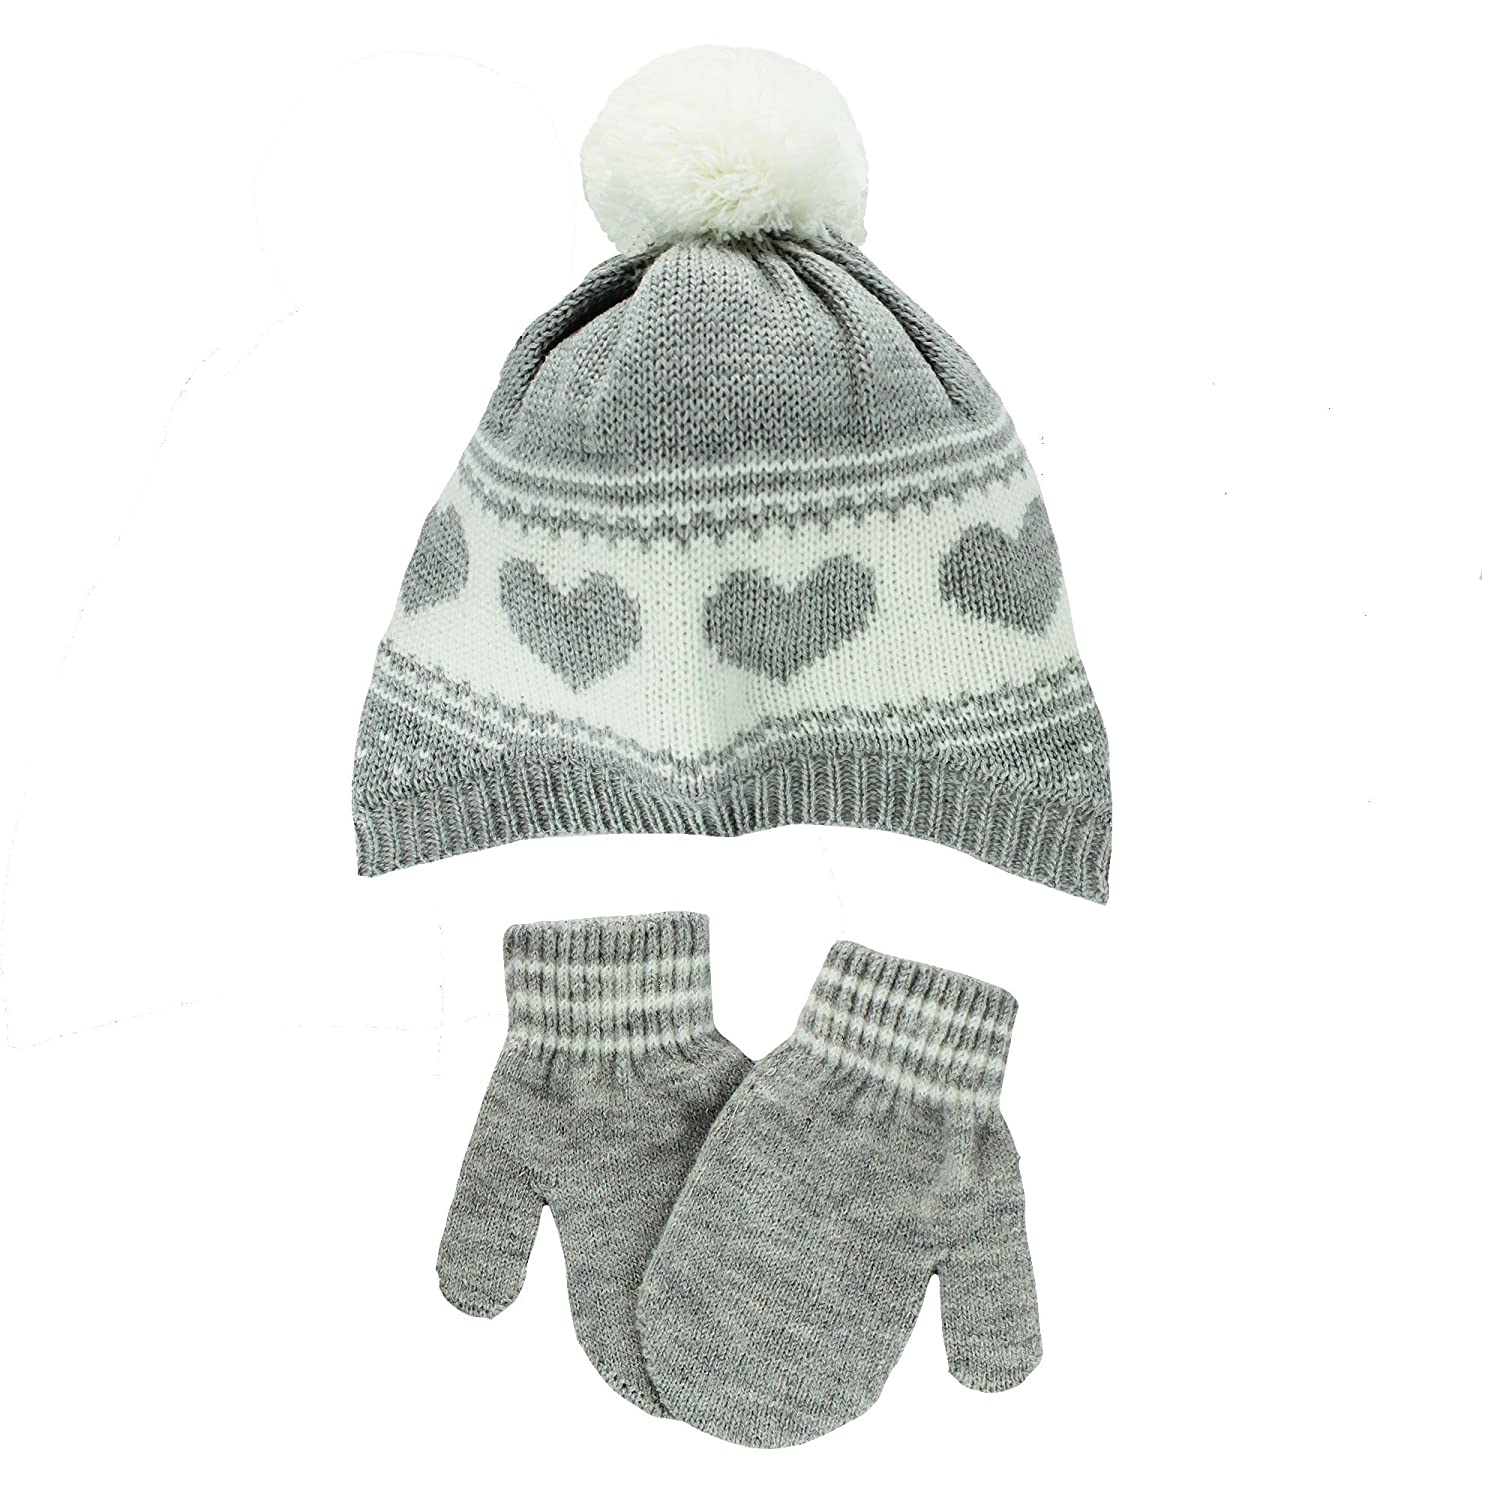 Carter's Infant Girls Knit Winter Ski Hat and Mittens 12-24 mths Heather Grey HM2NX7RCS -GREY-12-24